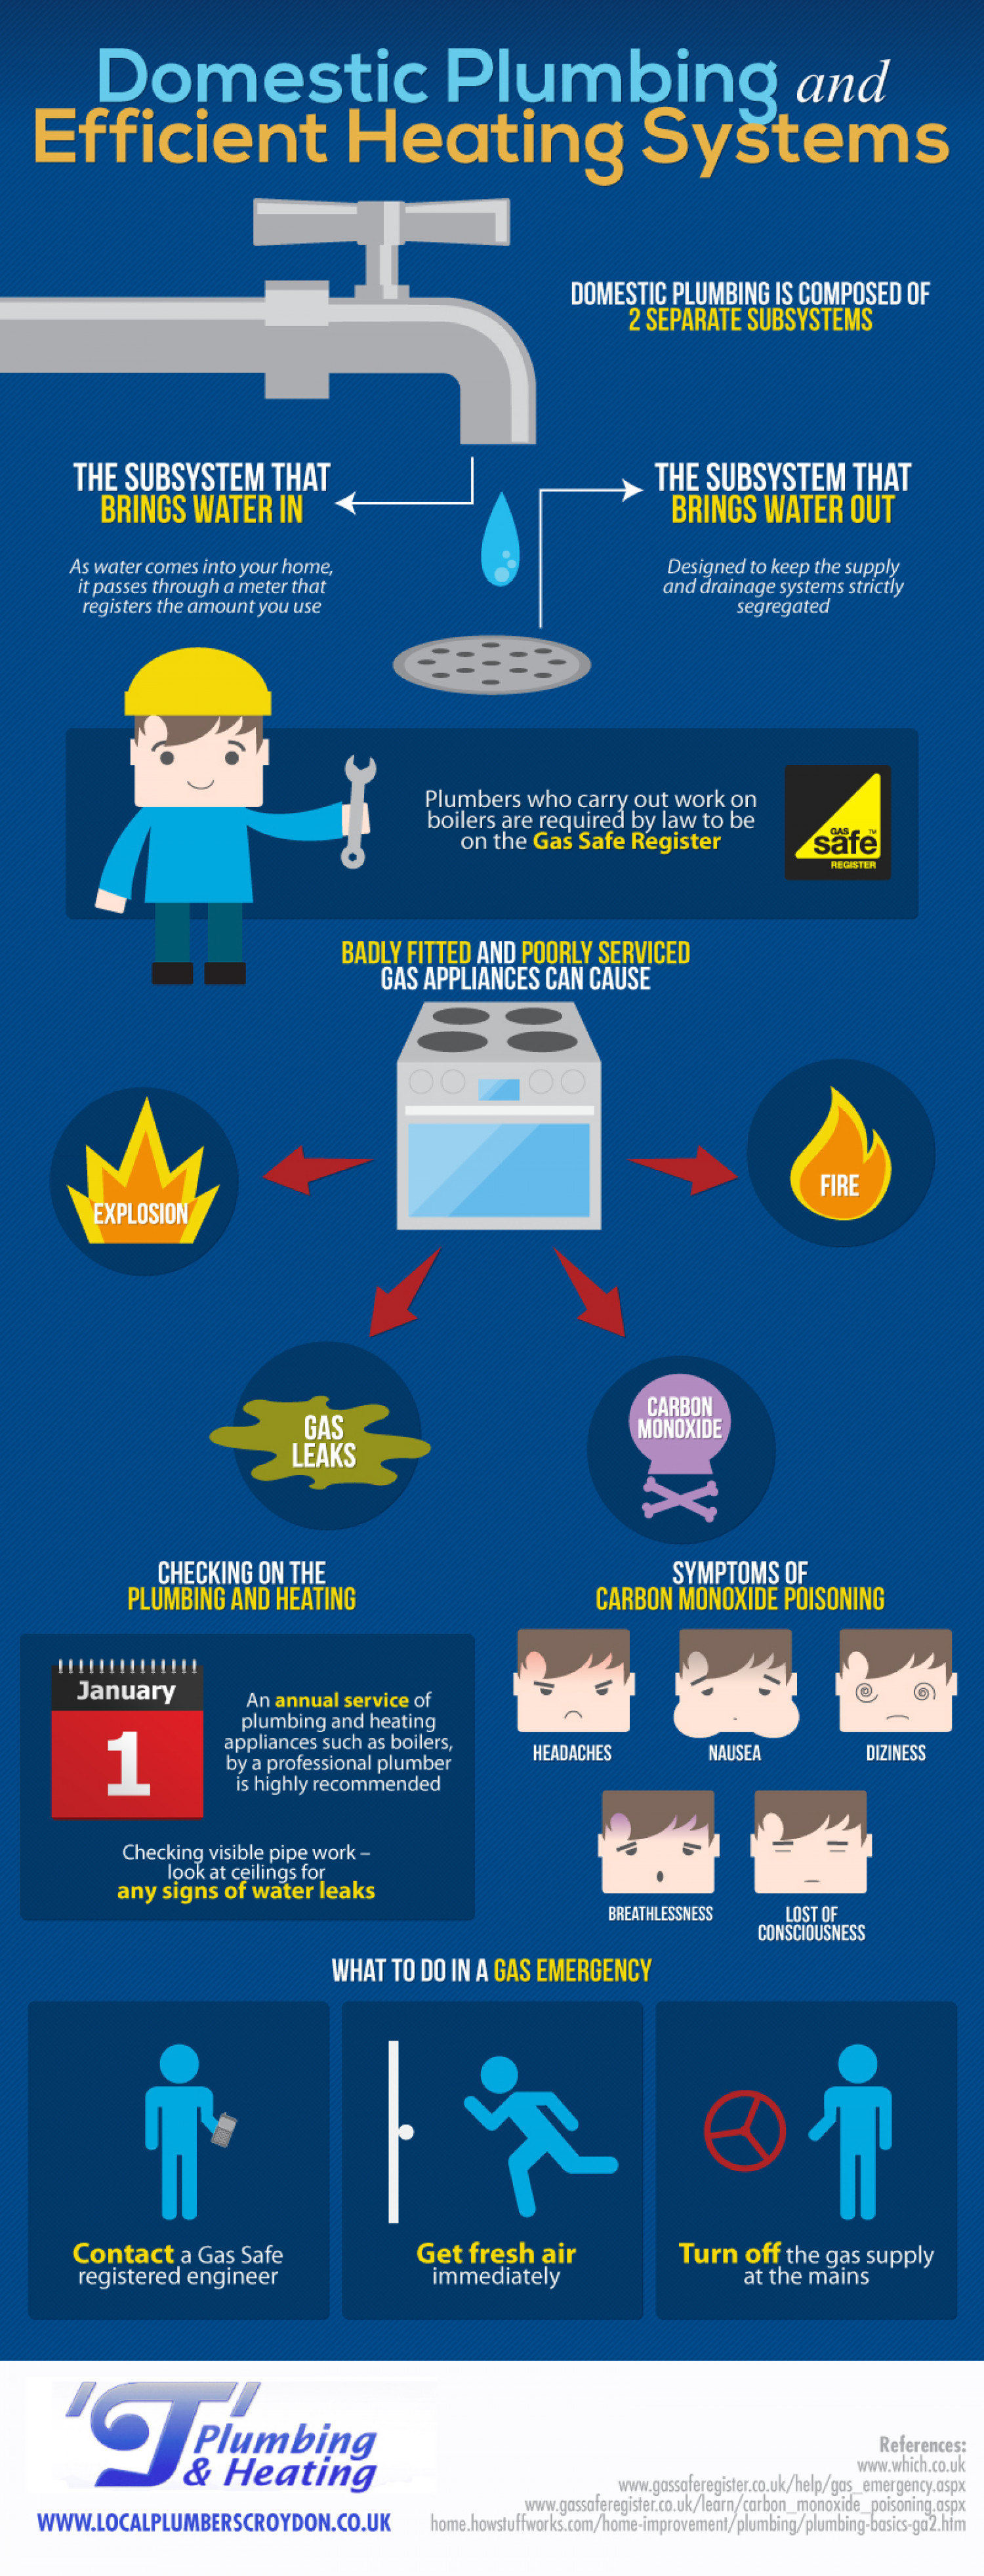 Domestic Plumbing and Effective Heating Systems Infographic